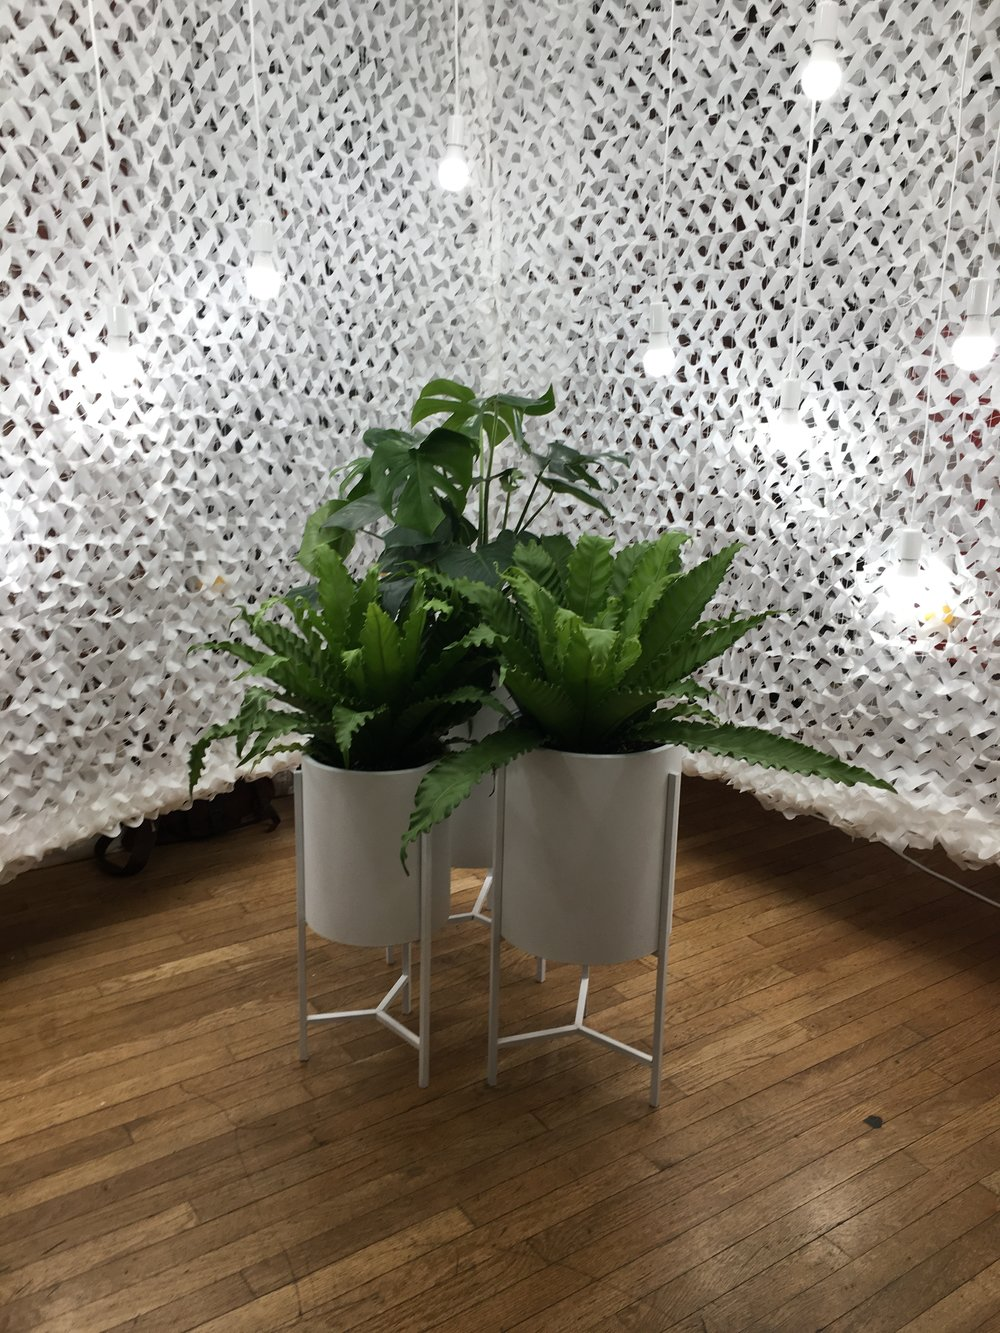 Photo of Lighting Science's installation at WantedDesign, New York 2018